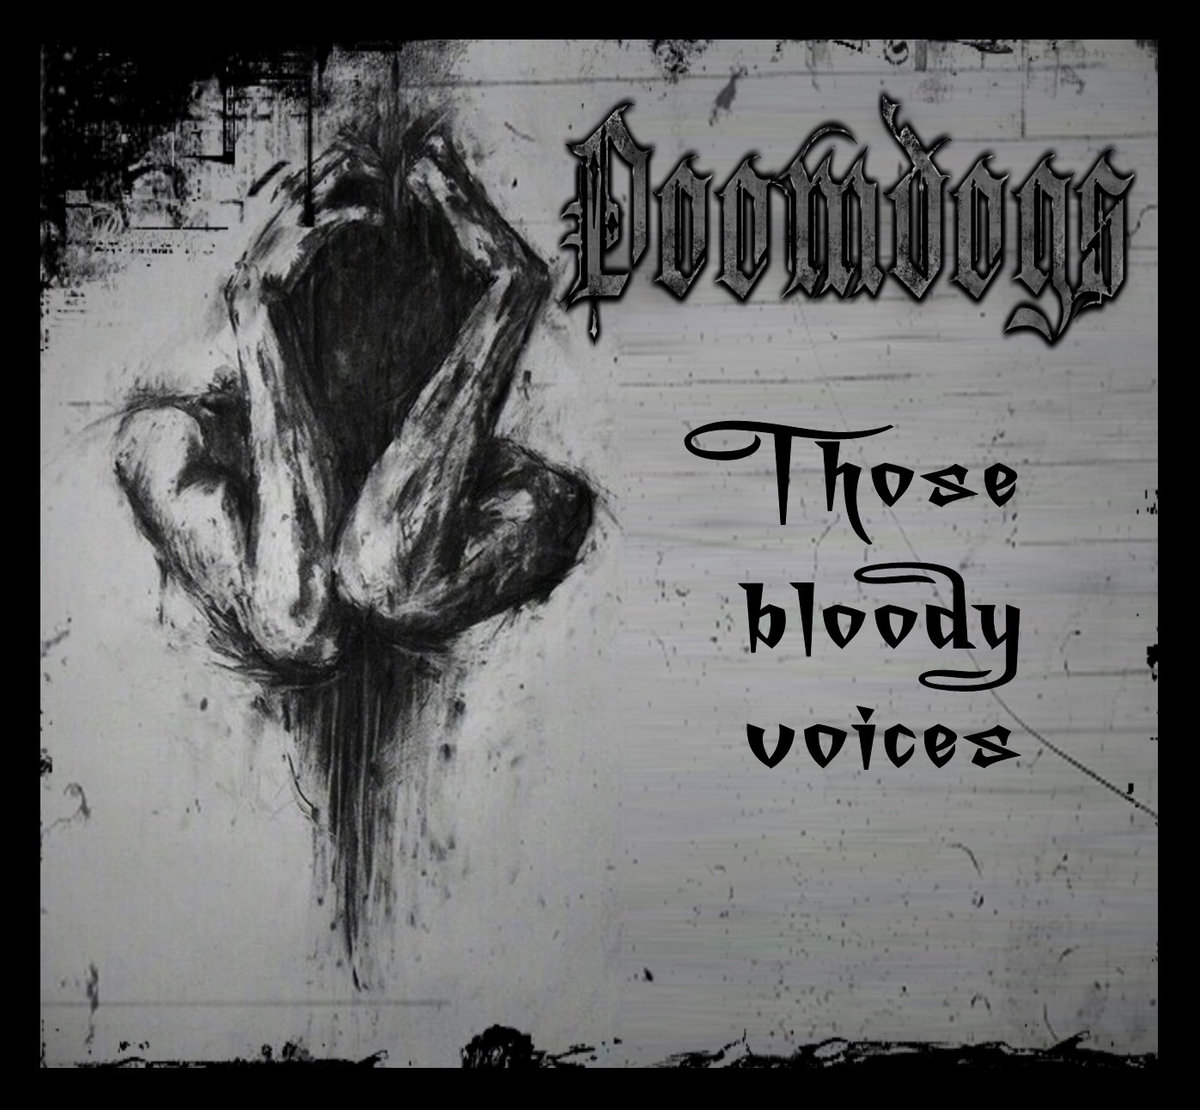 Those bloody voices (digi Single, new track - Sept 2015) by Doomdogs